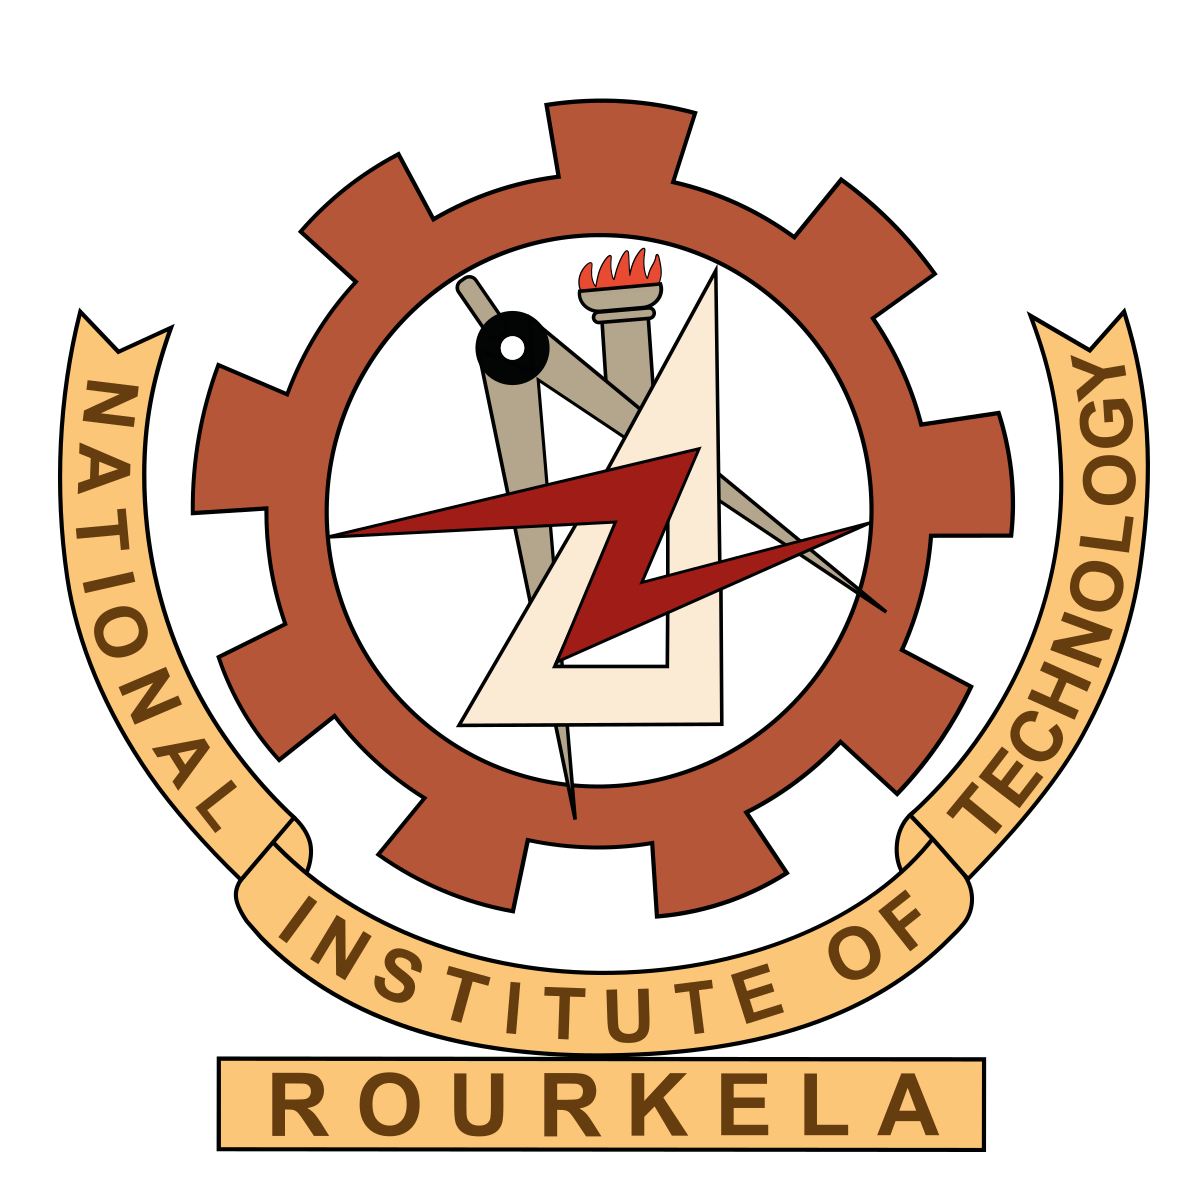 CfP: Conference on Innovative Product Design & Intelligent Manufacturing Systems at NIT Rourkela [Dec 2-3]: Submit by Apr 15